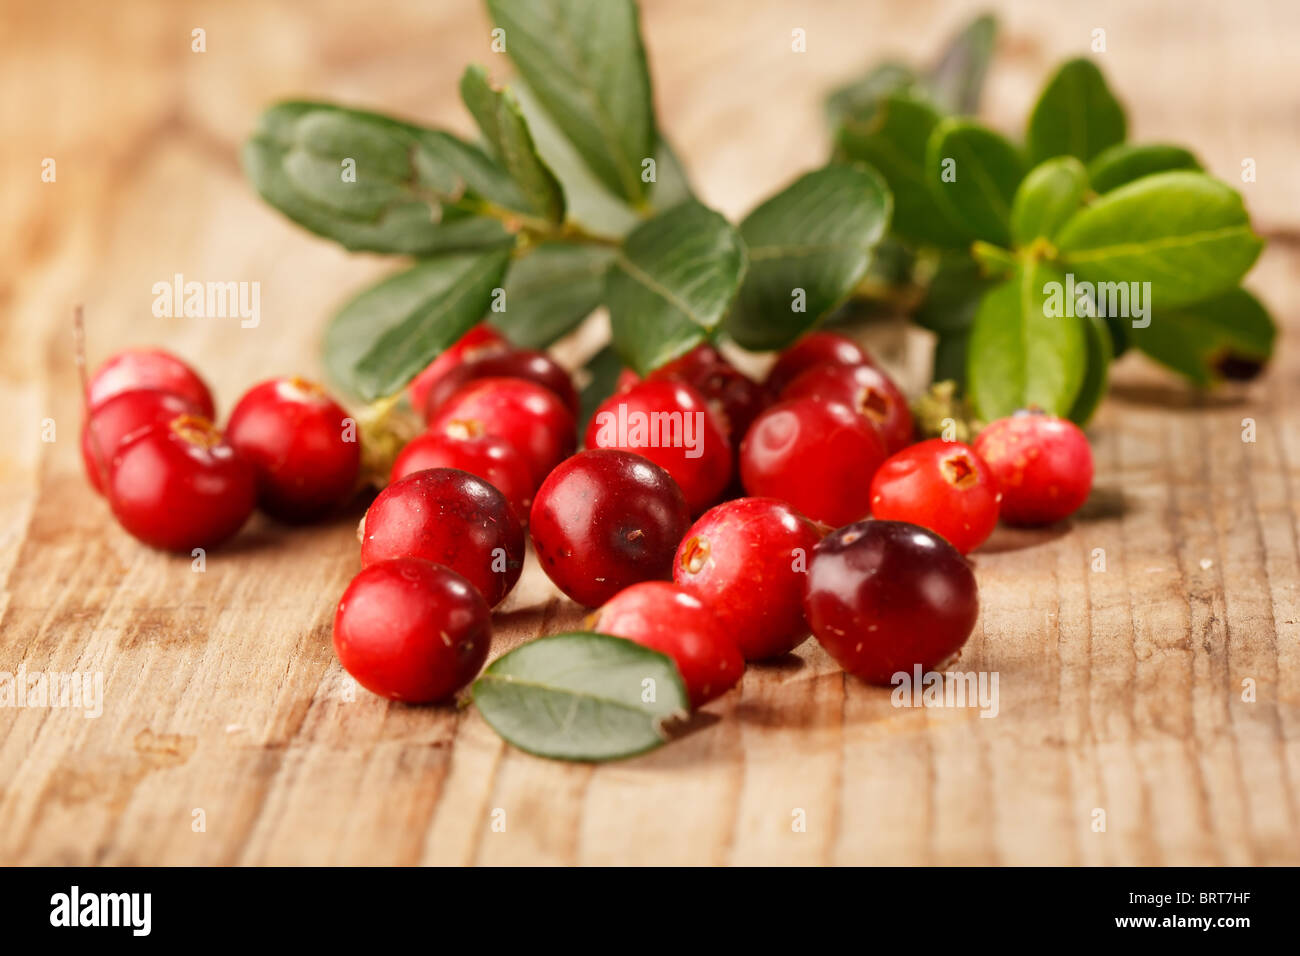 cranberries stockfotos cranberries bilder alamy. Black Bedroom Furniture Sets. Home Design Ideas